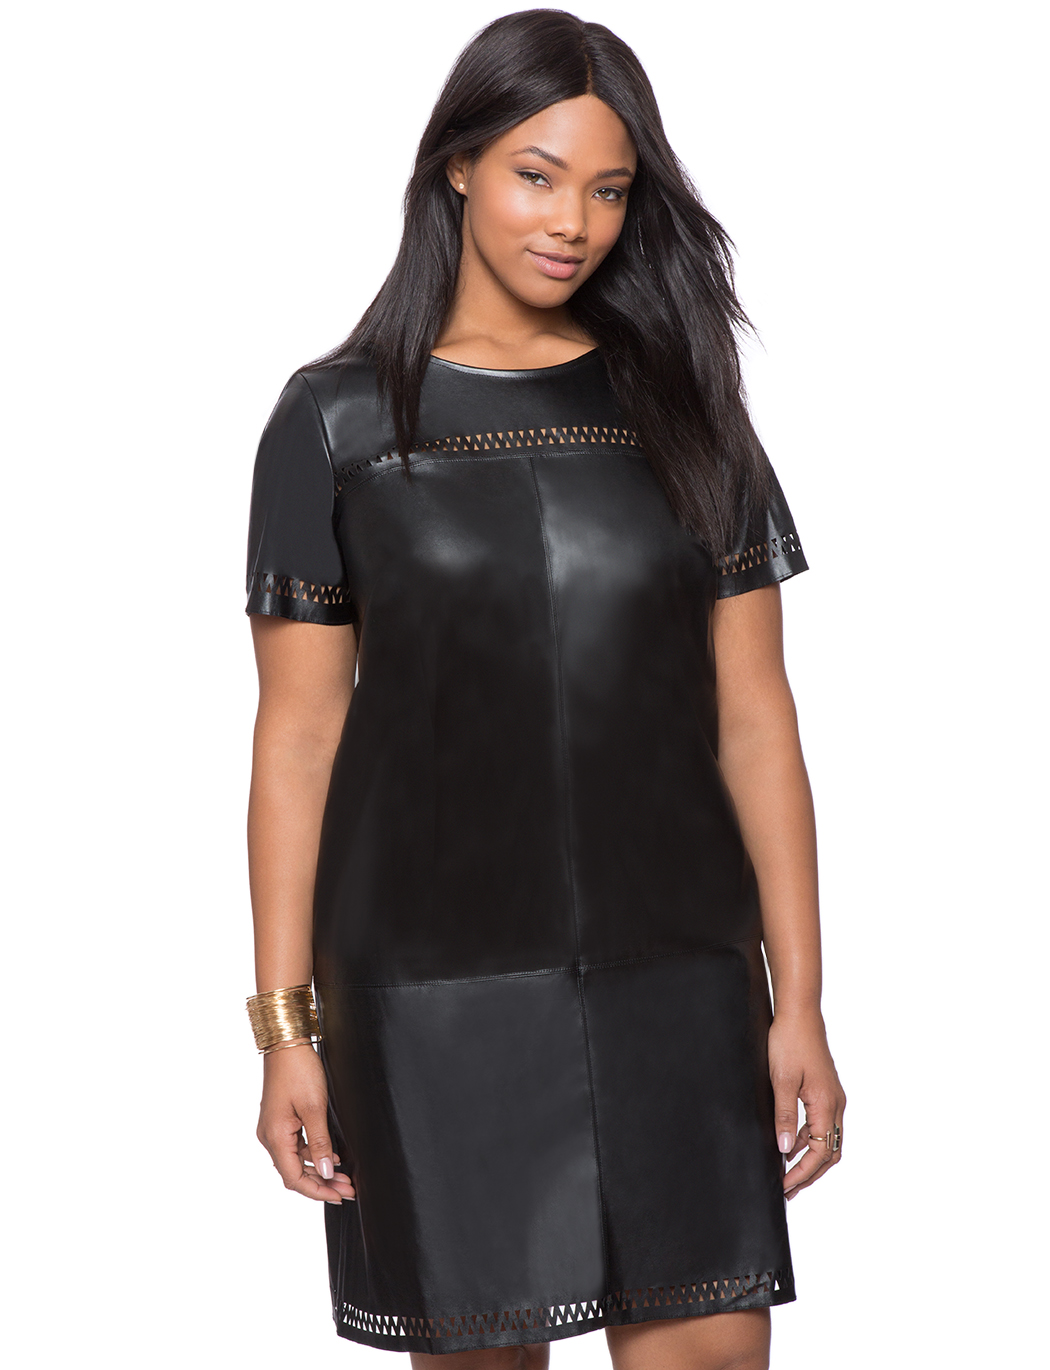 Studio Faux Leather Tee Shirt Dress | Women\'s Plus Size Dresses | ELOQUII